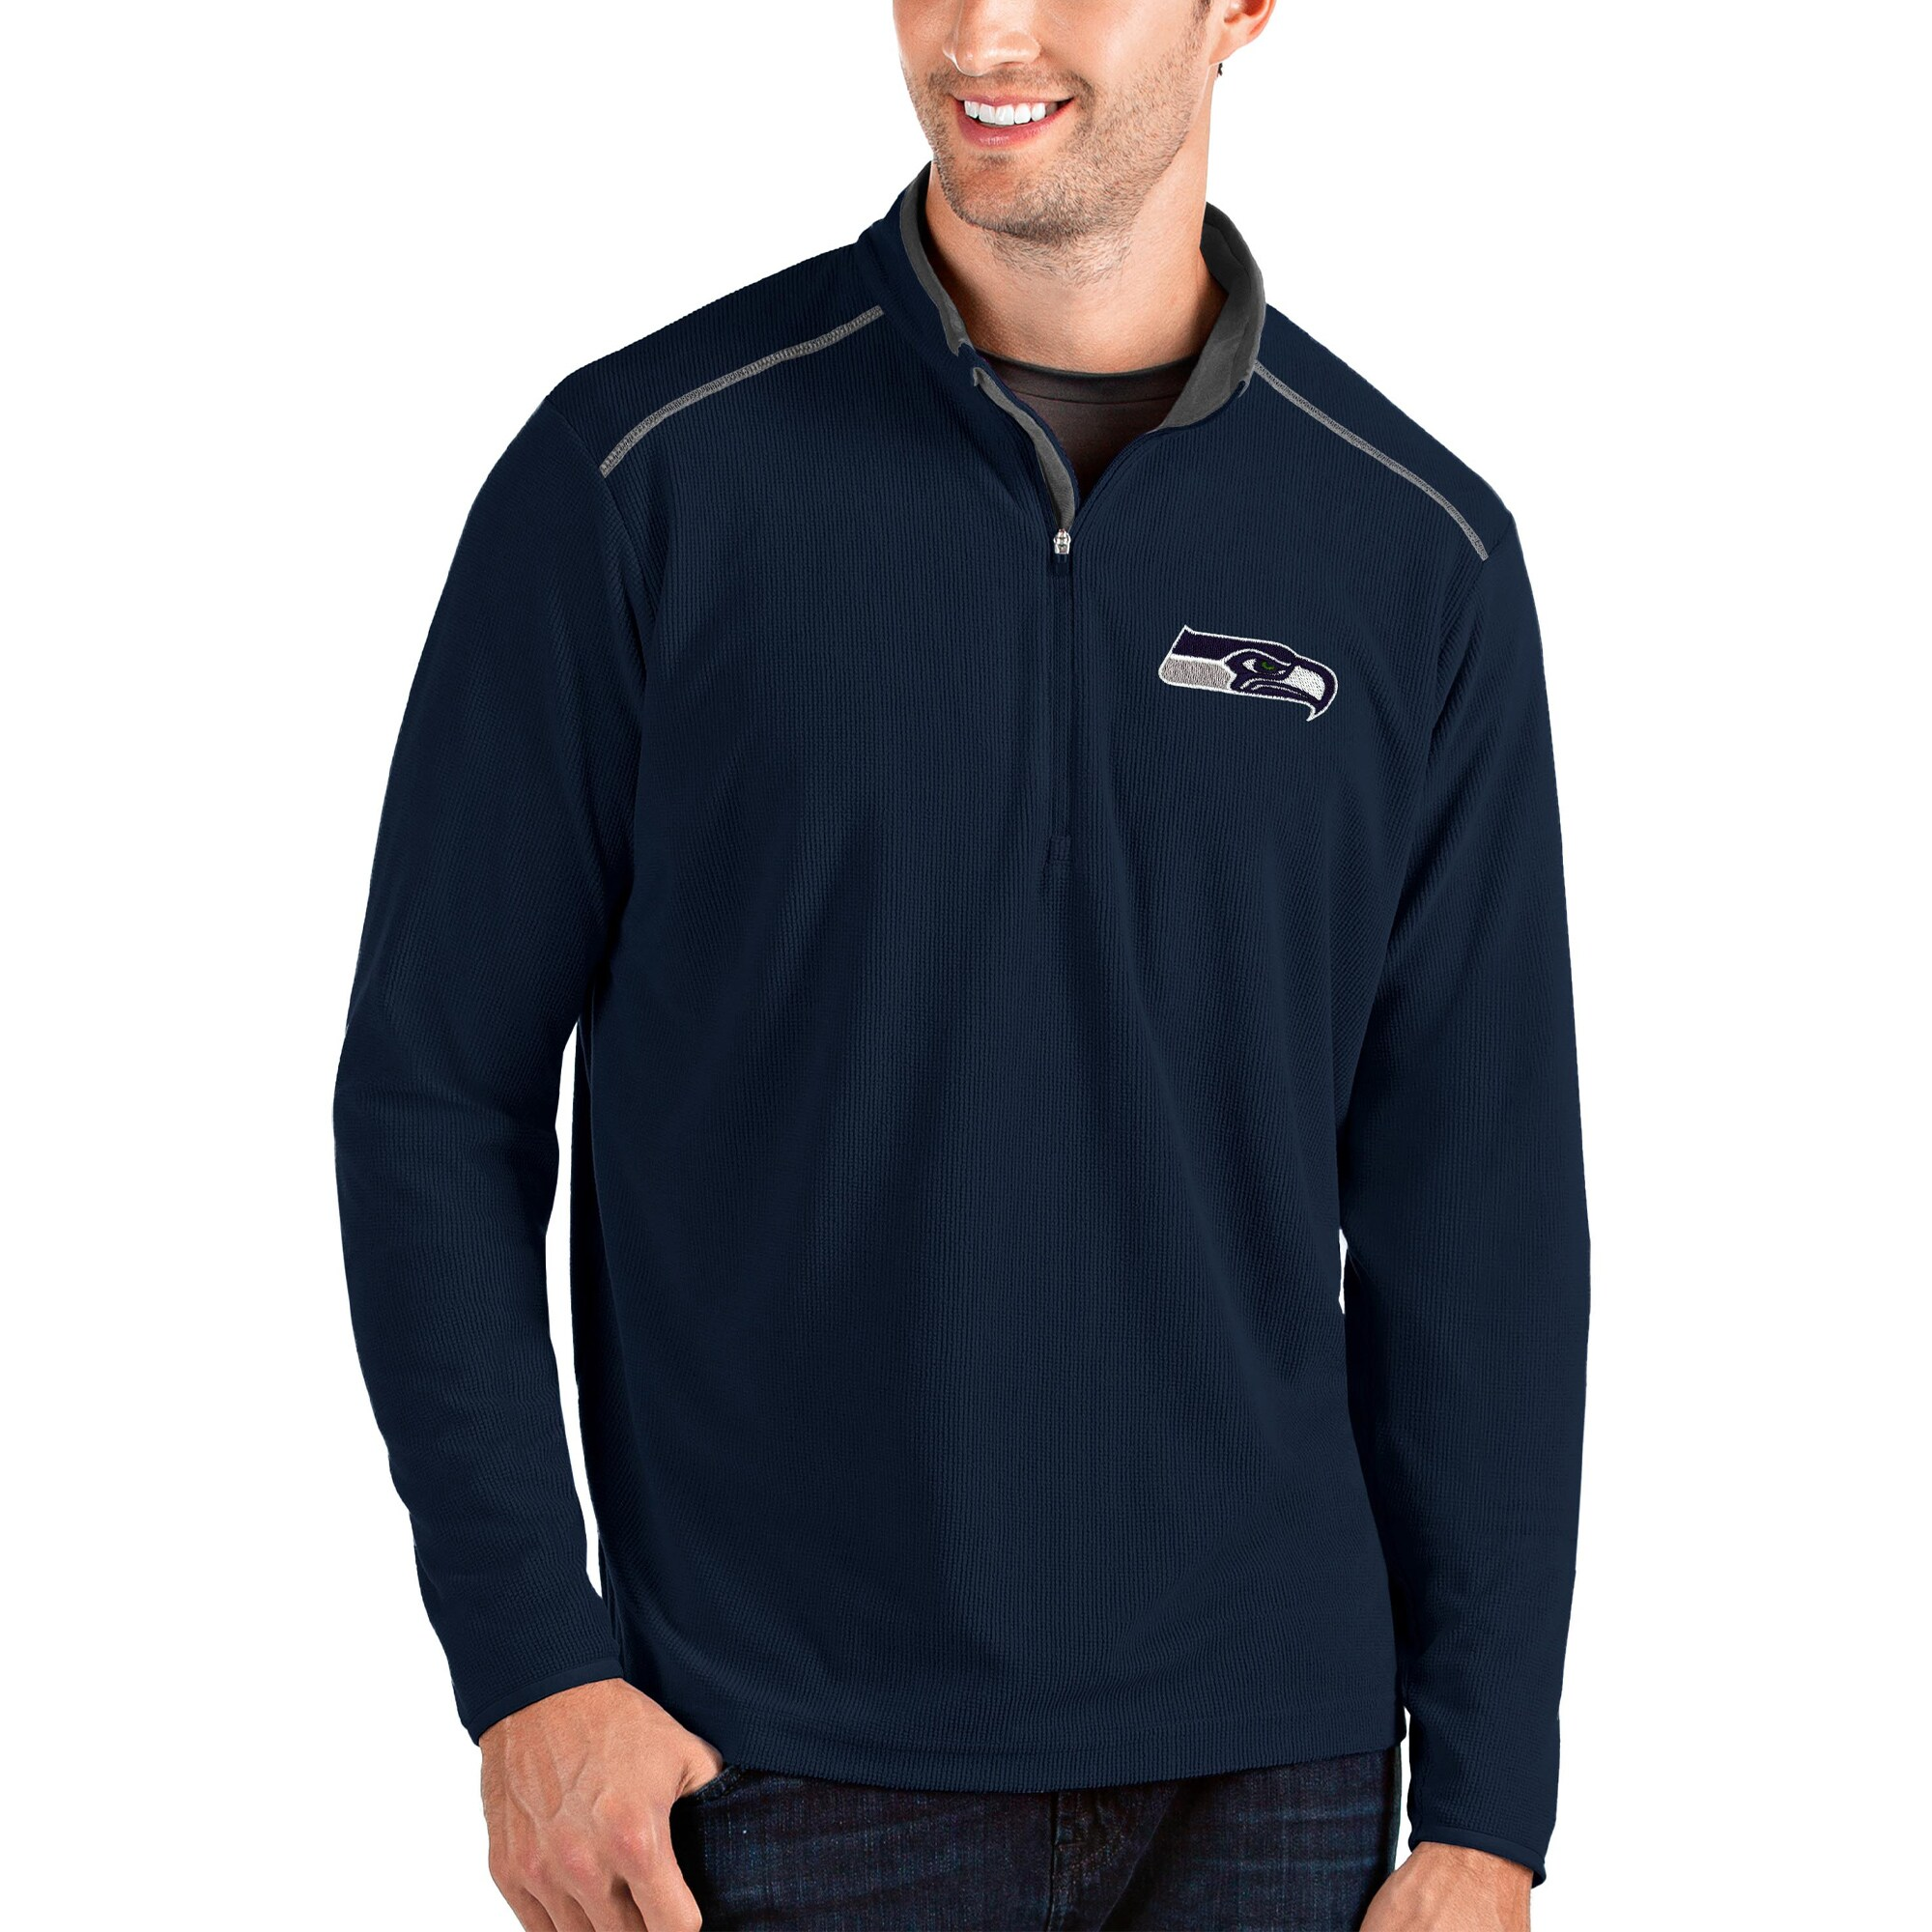 Seattle Seahawks Antigua Glacier Quarter-Zip Pullover Jacket - Navy/Gray